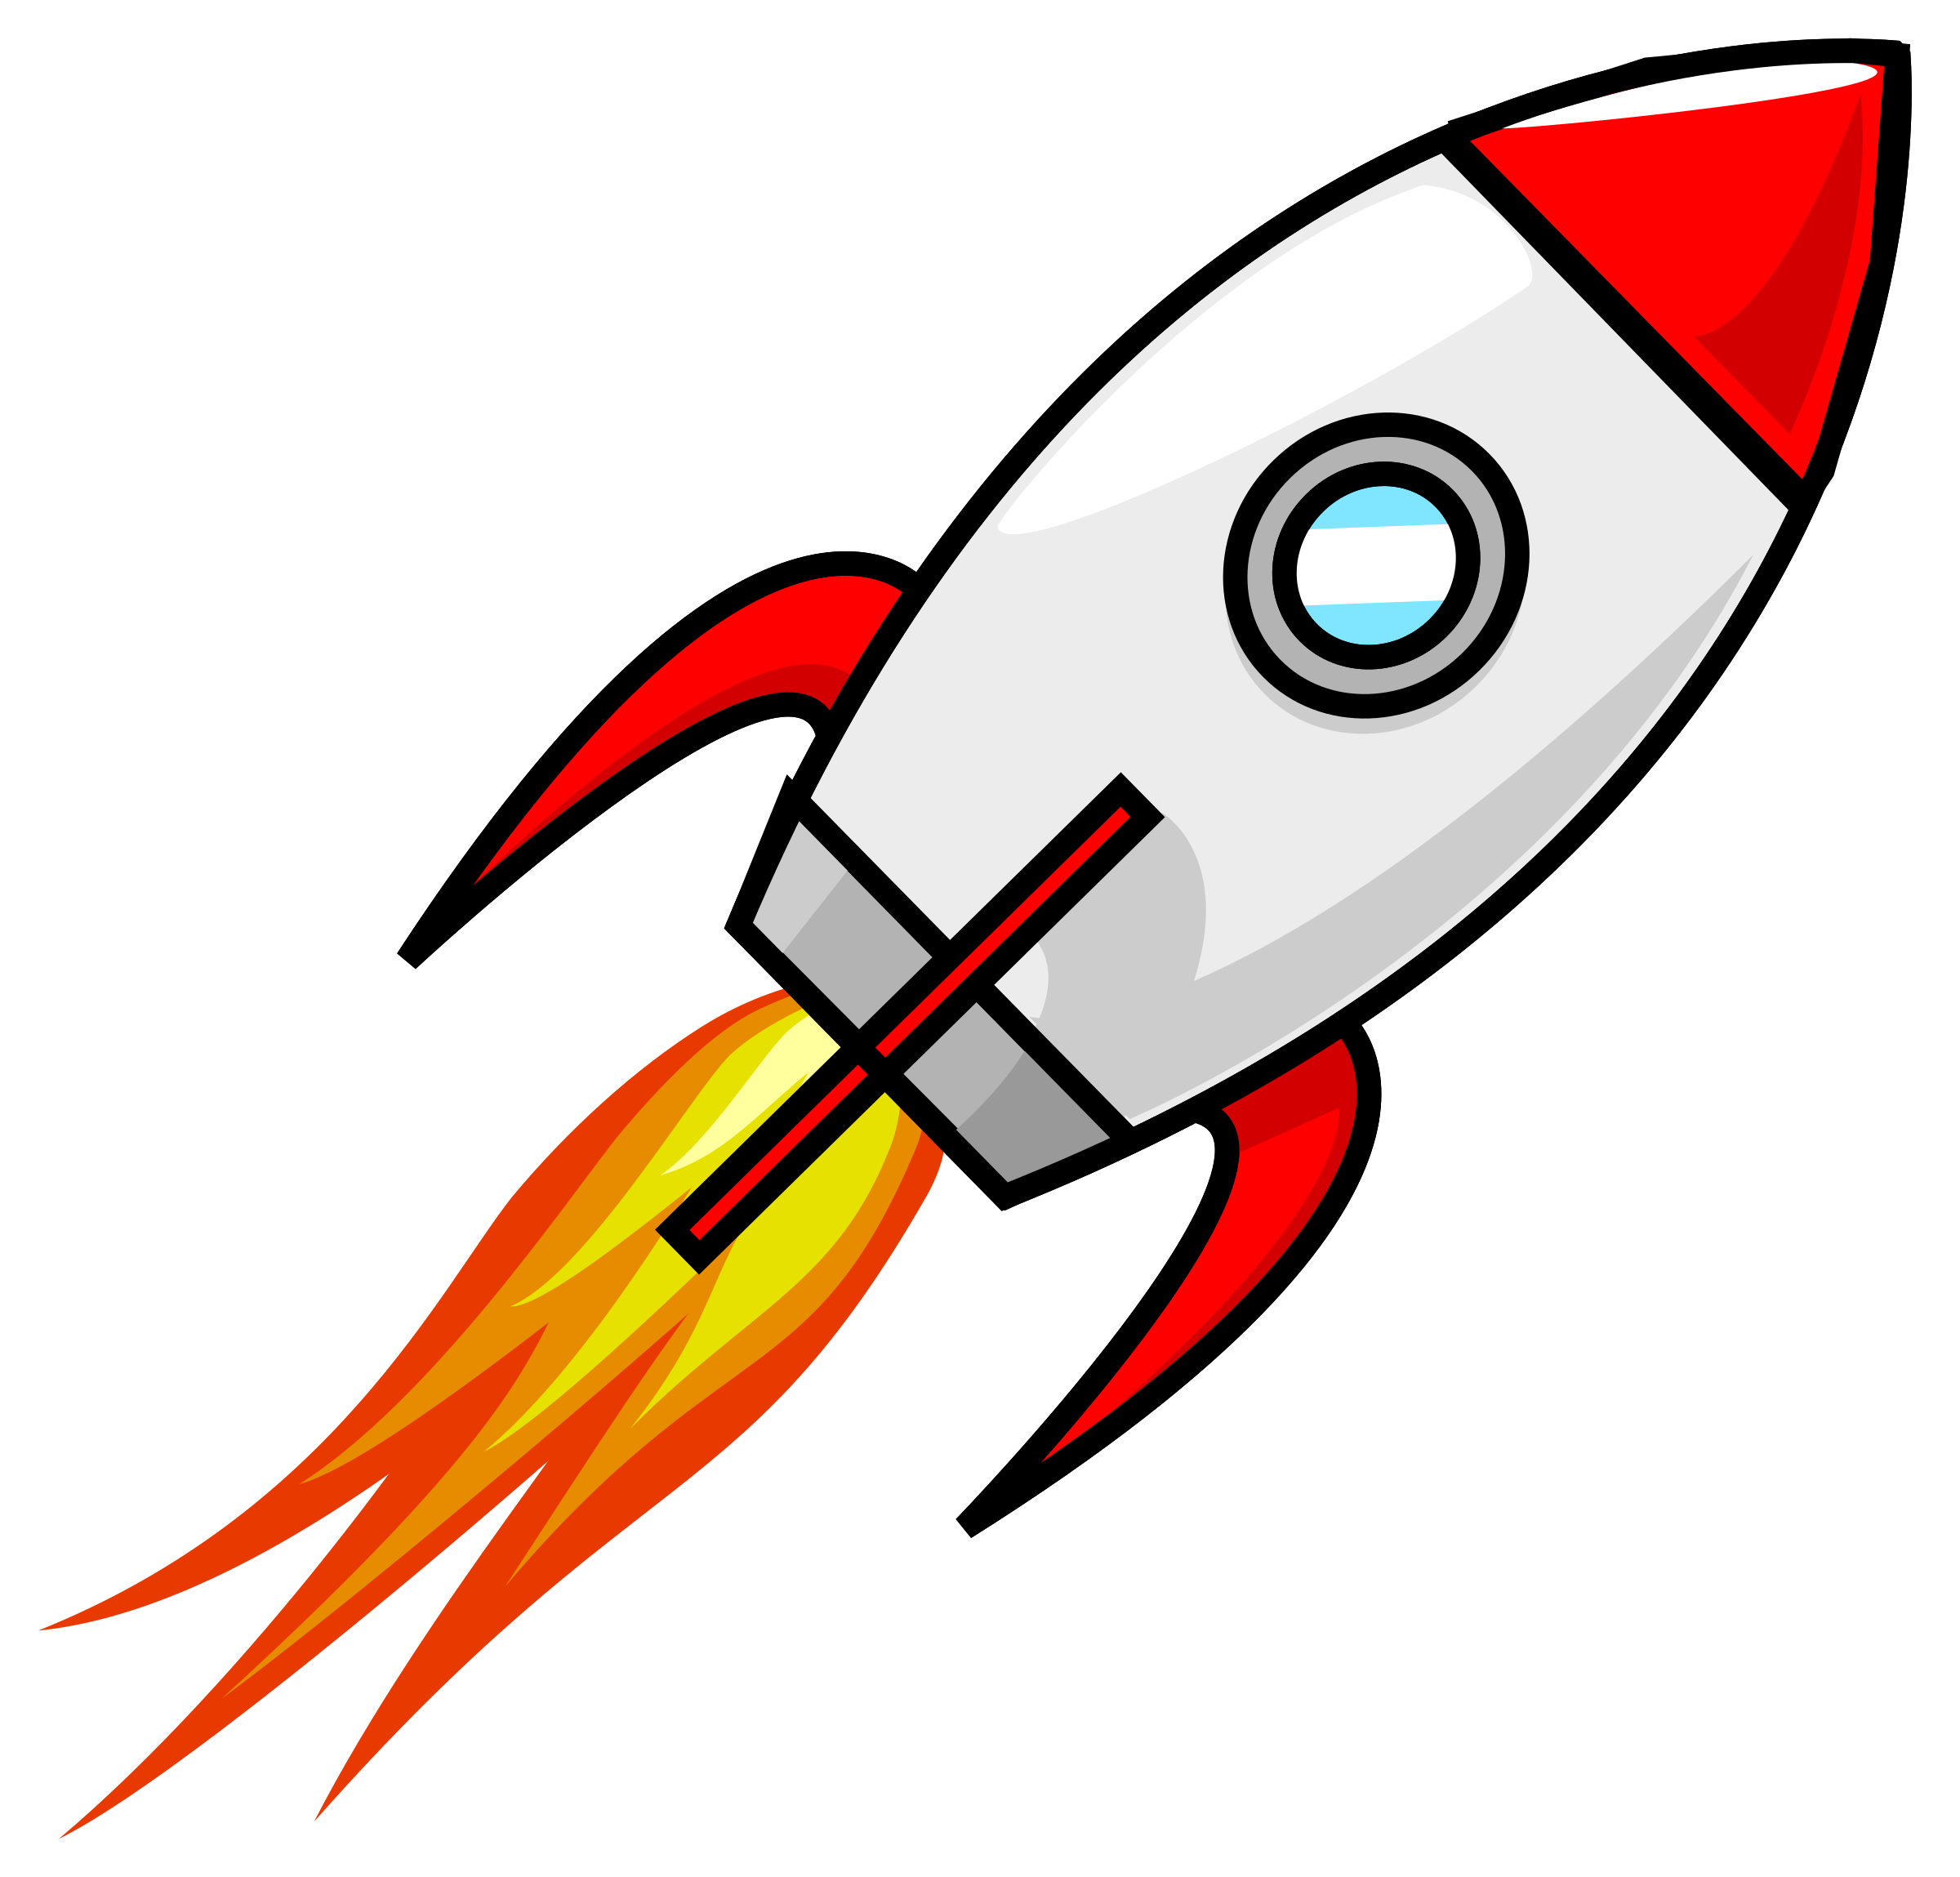 rocket clip art 40810 free icons and png backgrounds rh freeiconspng com clip art rocket blasting off clip art rocket fuel